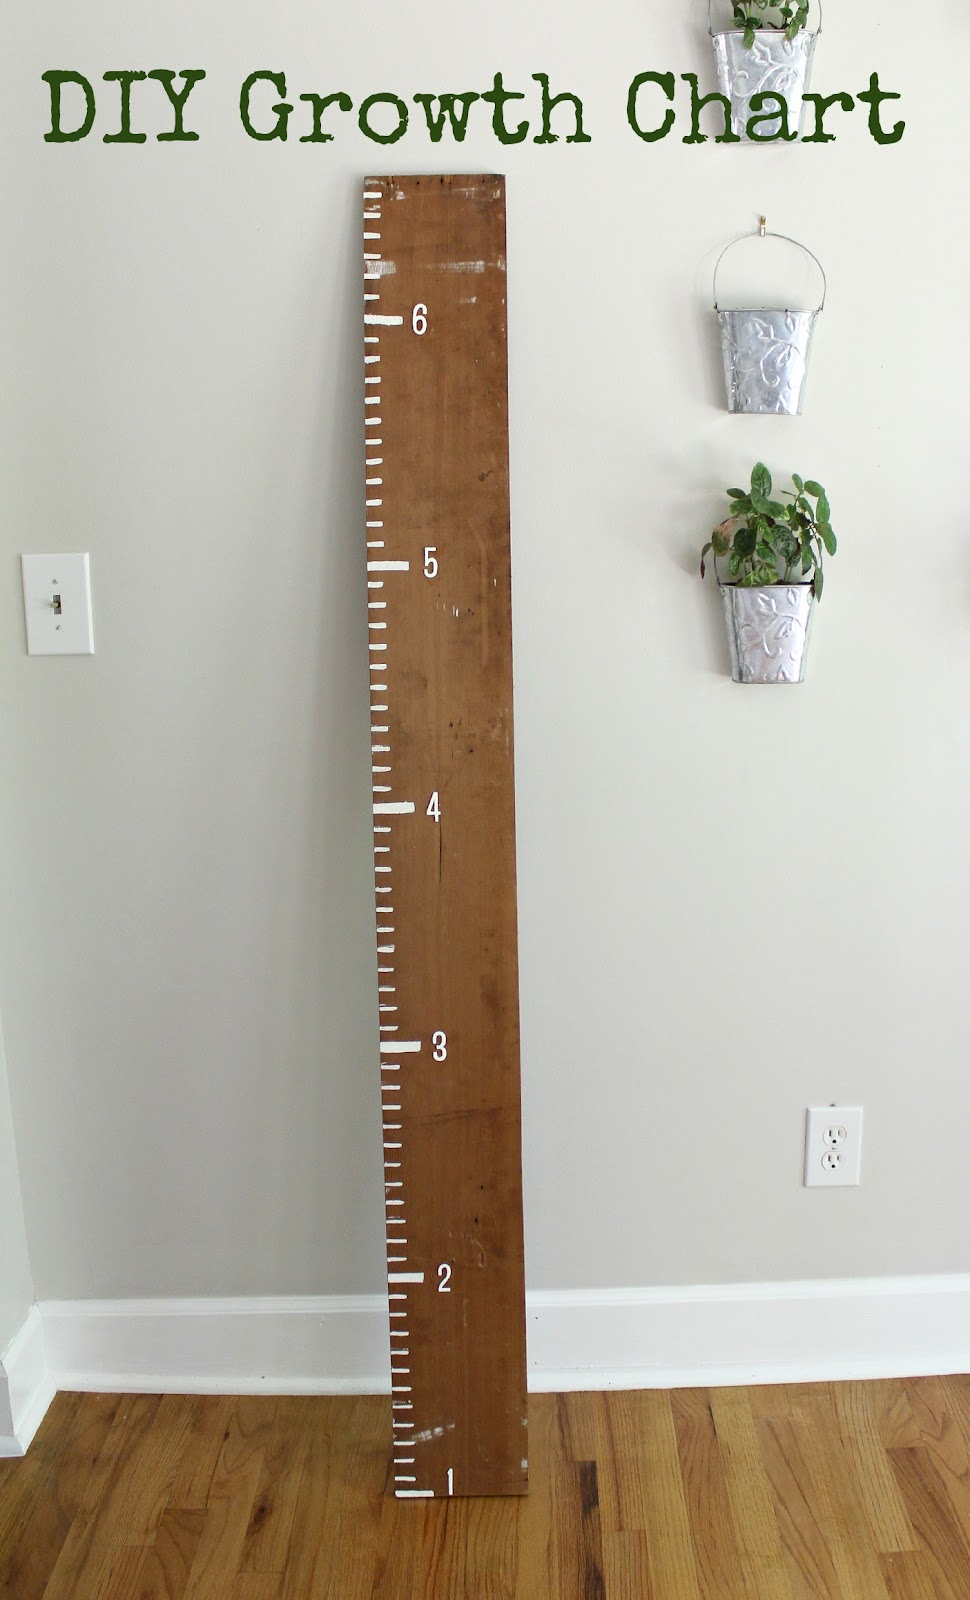 Diy Wooden Ruler Growth Chart Woodguides